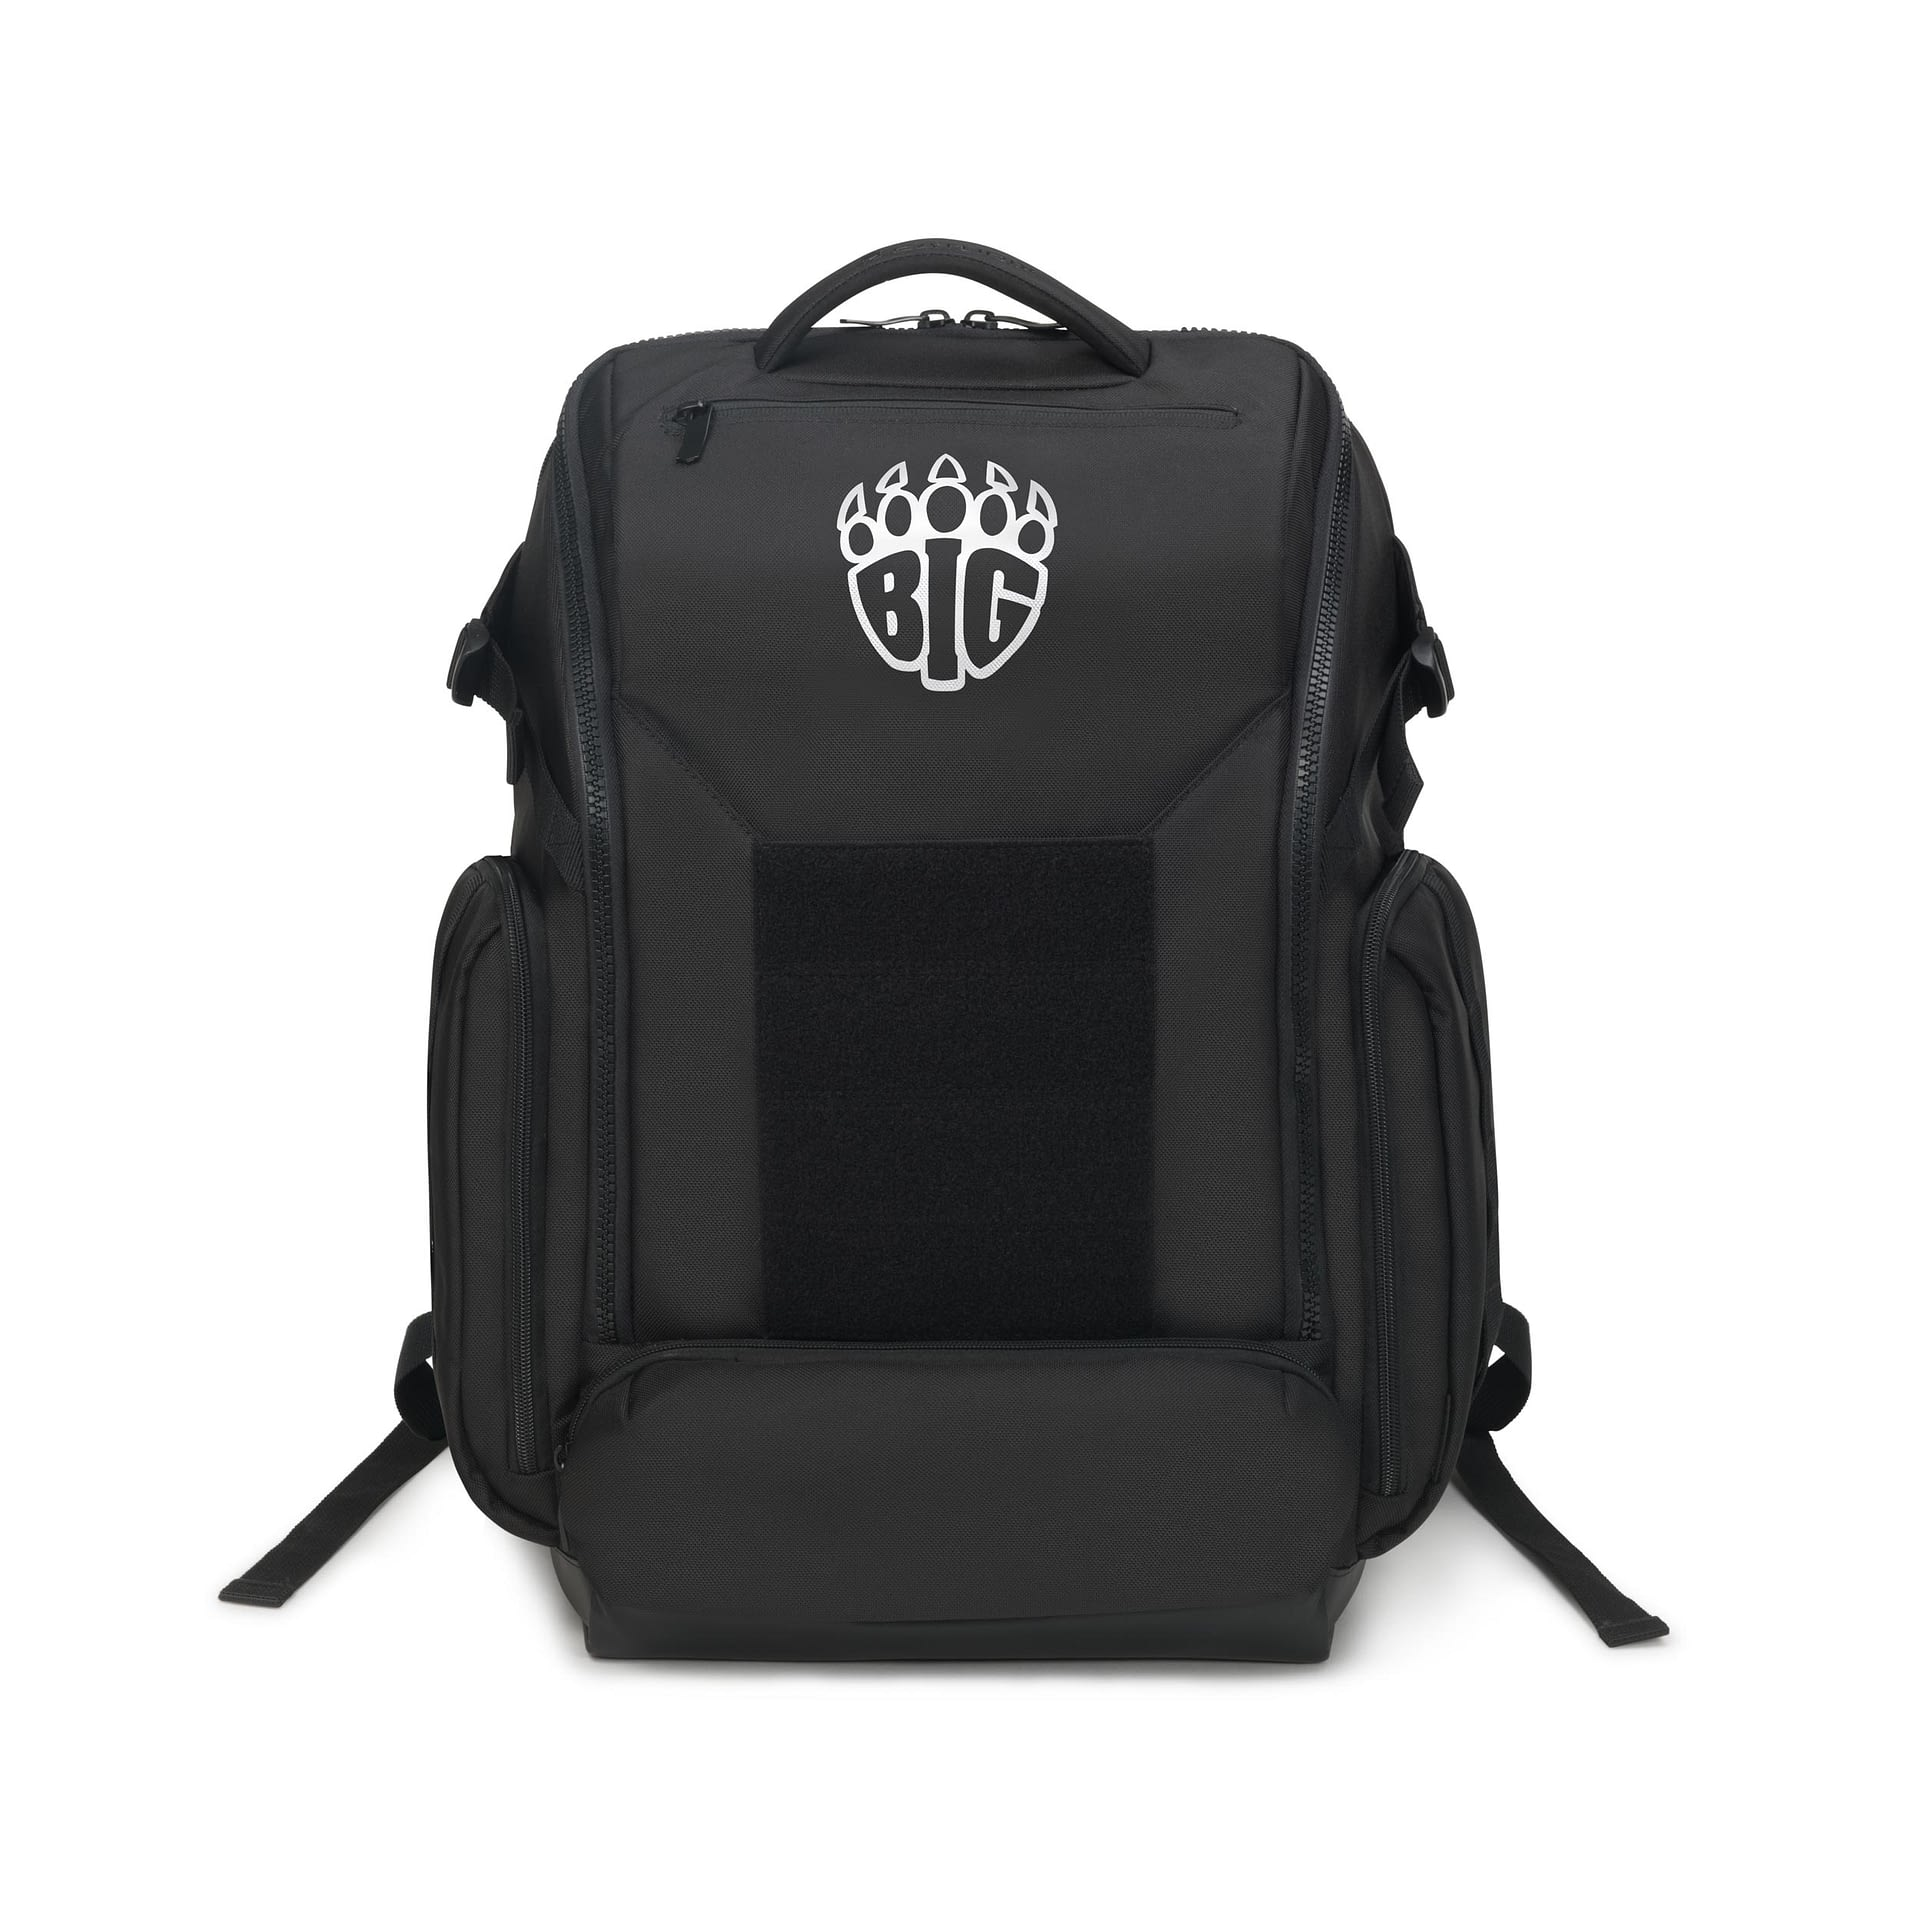 CATURIX-GAMING-ESPORTS-BACKPACK-ATTACHADER-BIG-LIMITED-EDITION-01